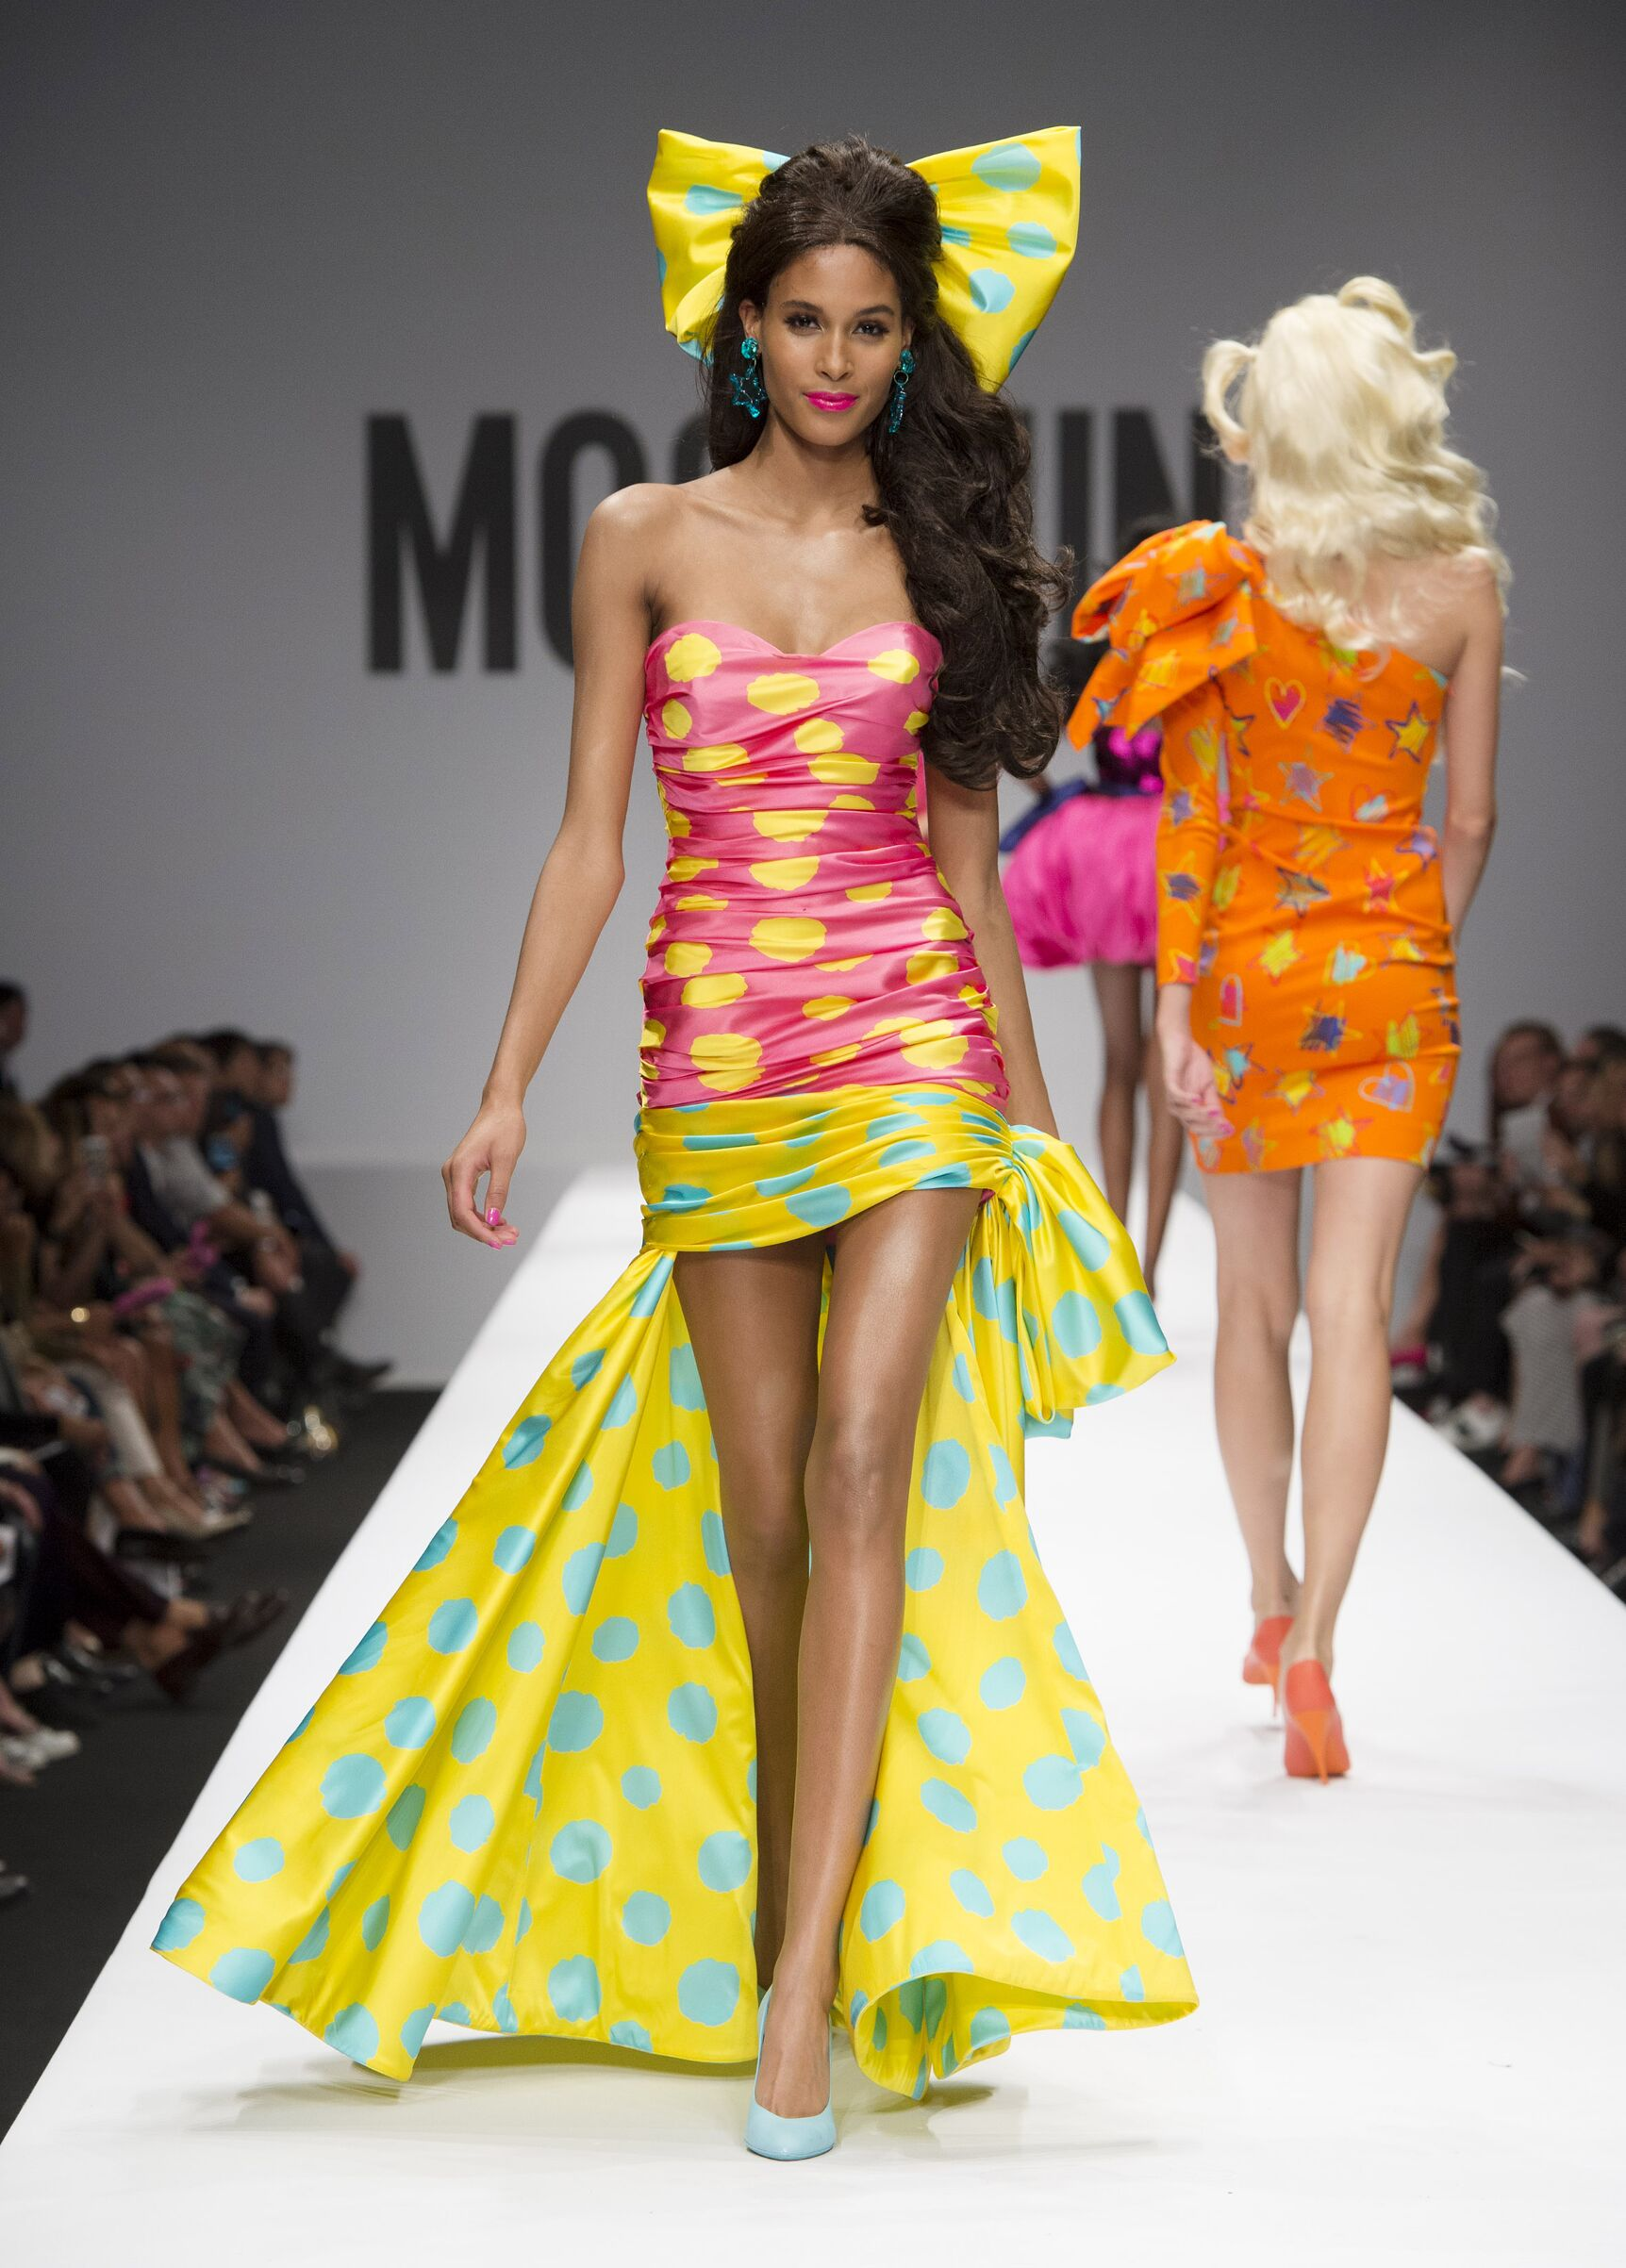 MOSCHINO SPRING SUMMER 2015 WOMEN'S COLLECTION